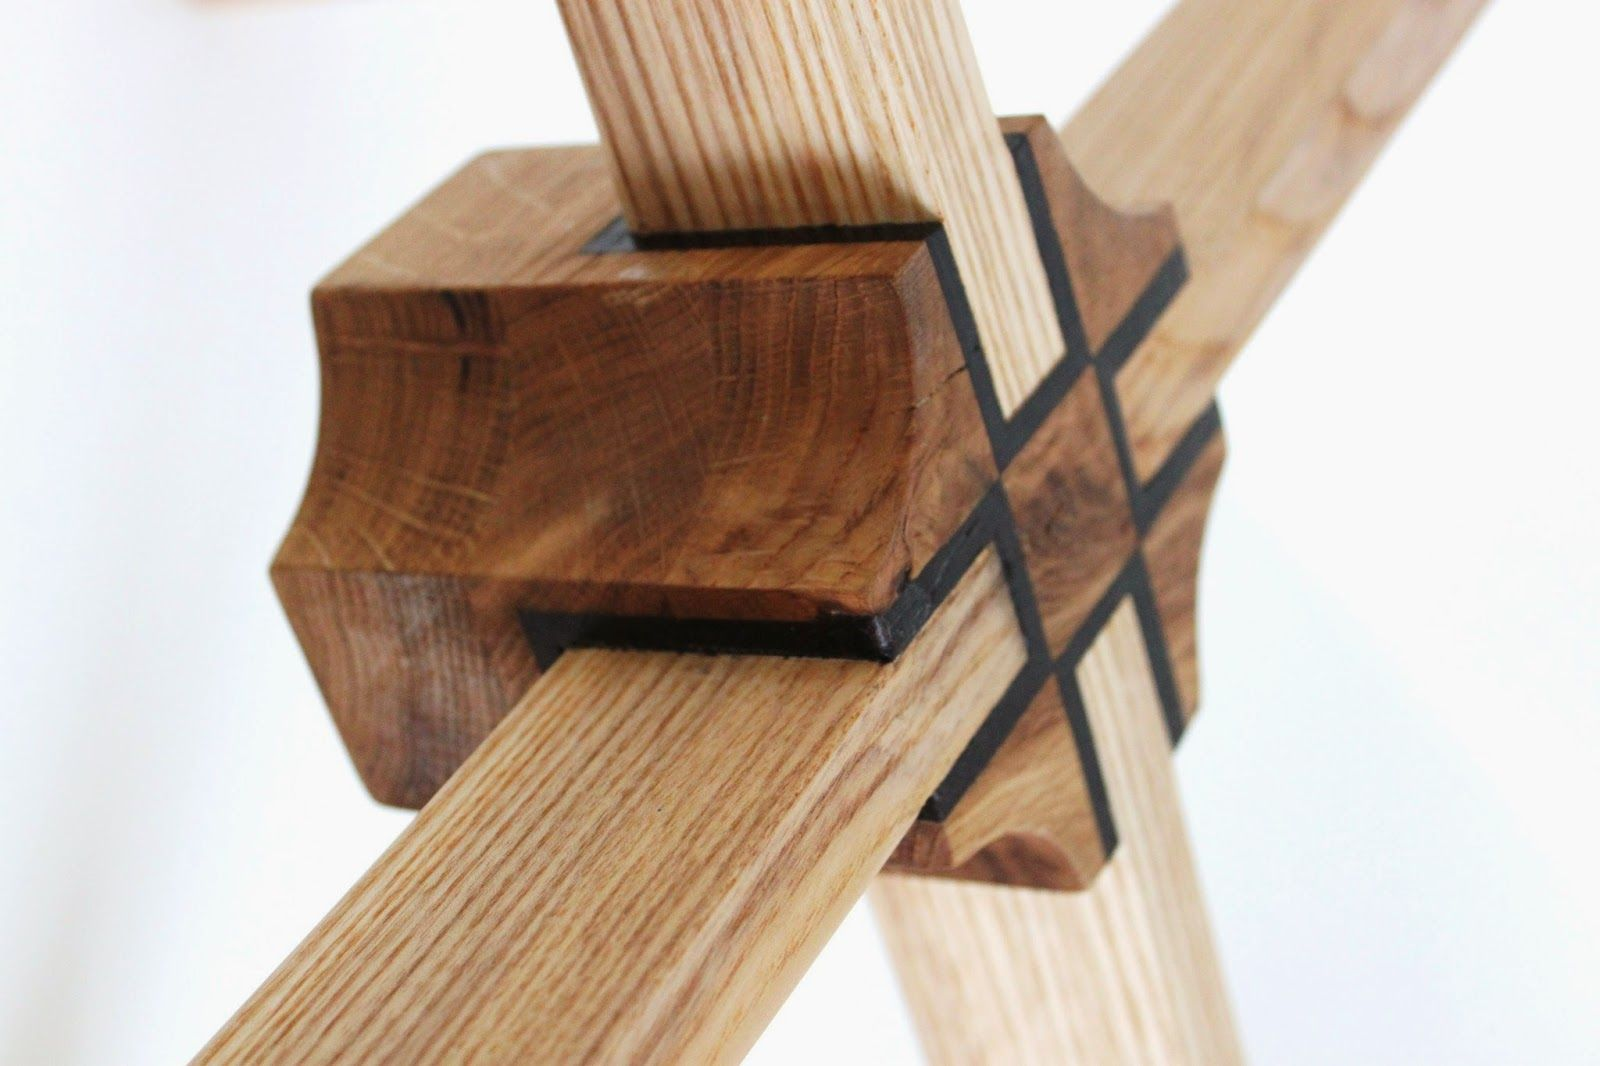 Furniture. Zee Chilufya's design for a glass topped table was based on the form of a simplified spider. With walnut and oak inlaid detail on the central apex joint.